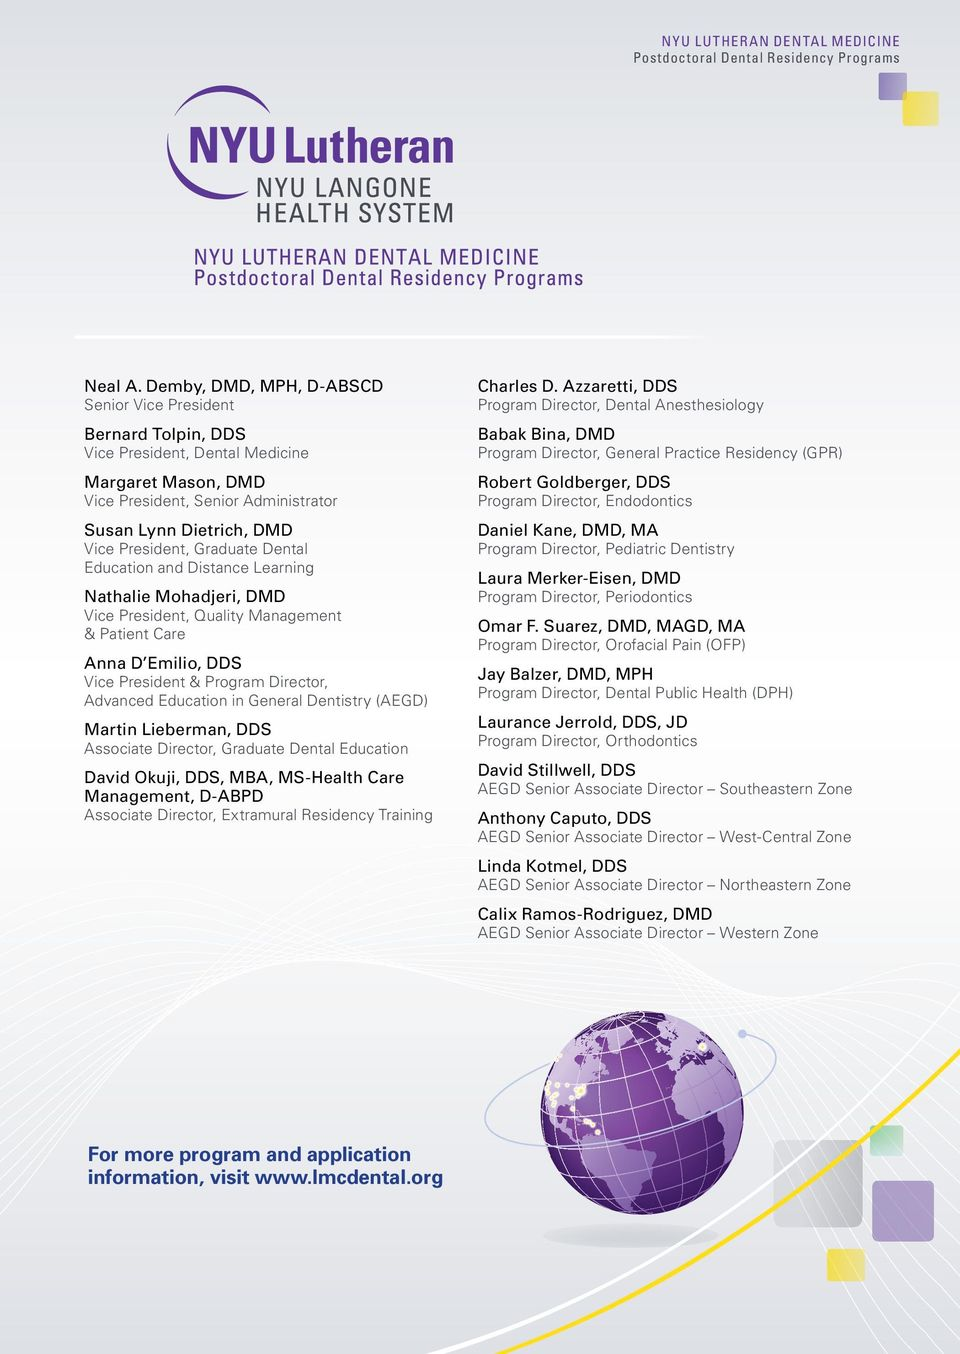 NYU Lutheran Dental Medicine currently offers six programs approved